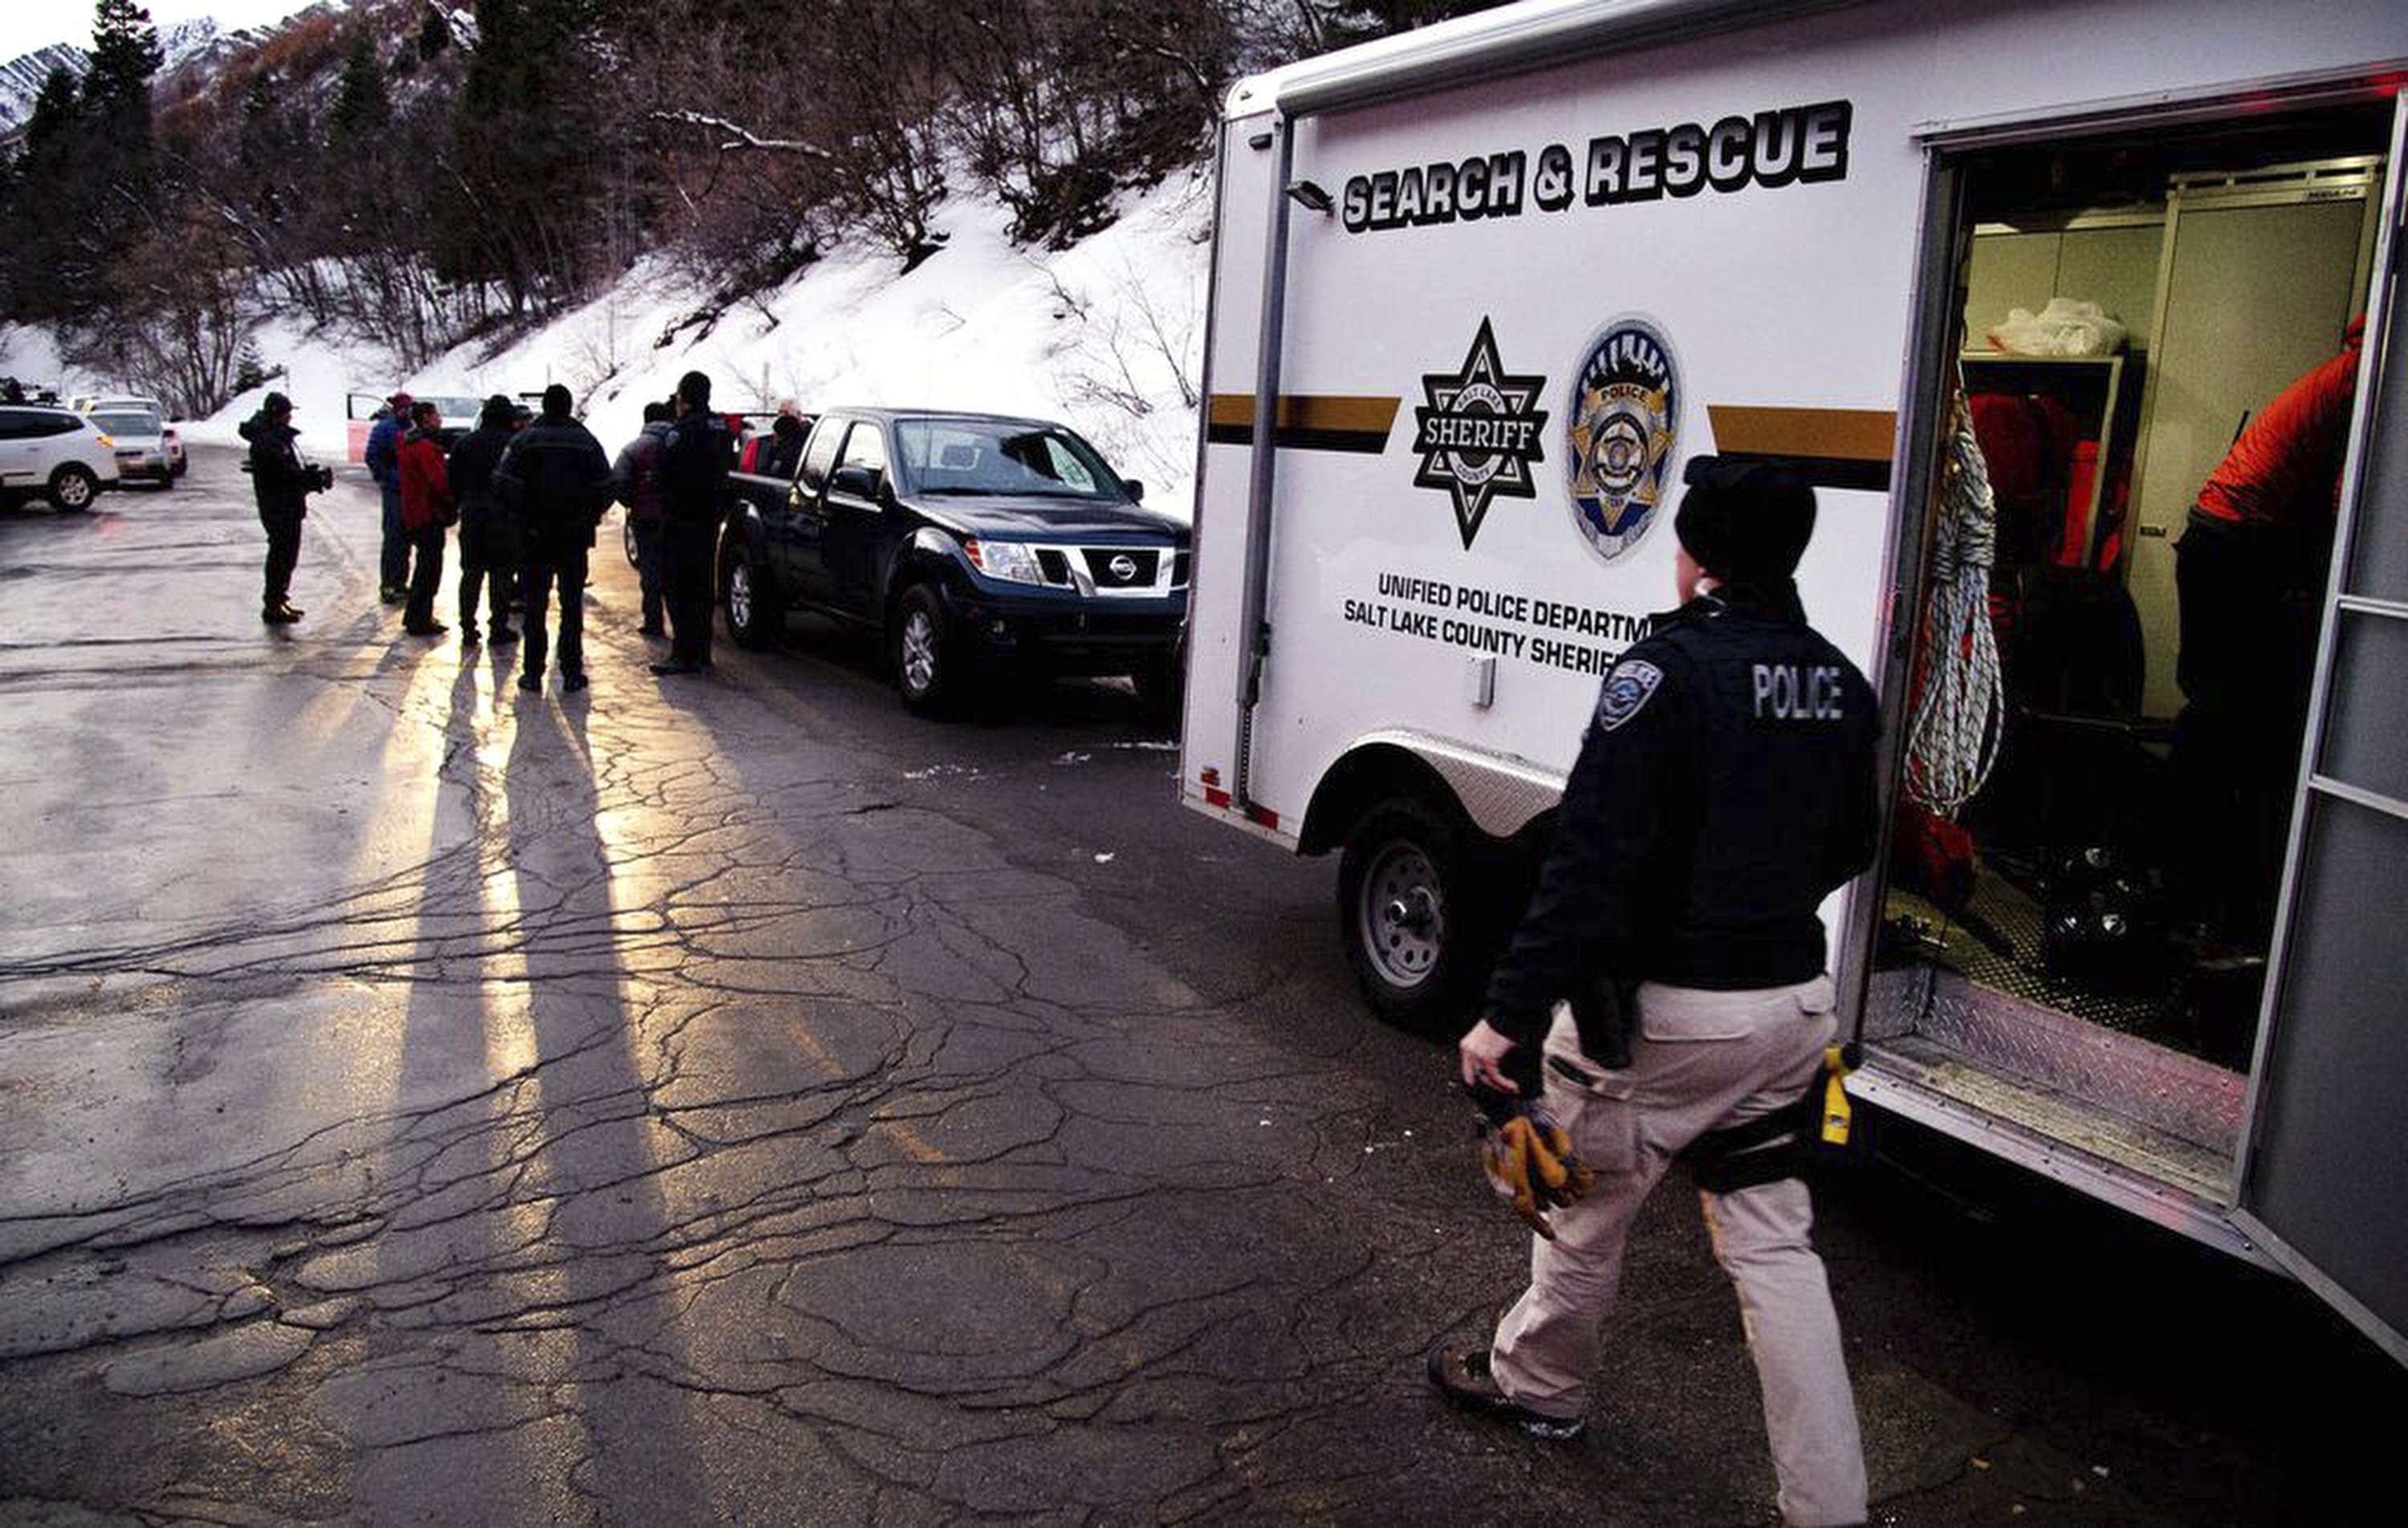 Salt Lake County Sheriff Search and Rescue crews respond to the top of Millcreek Canyon where four skiers died in an avalanche Saturday, Febuary 6, 2021, near Salt Lake City.